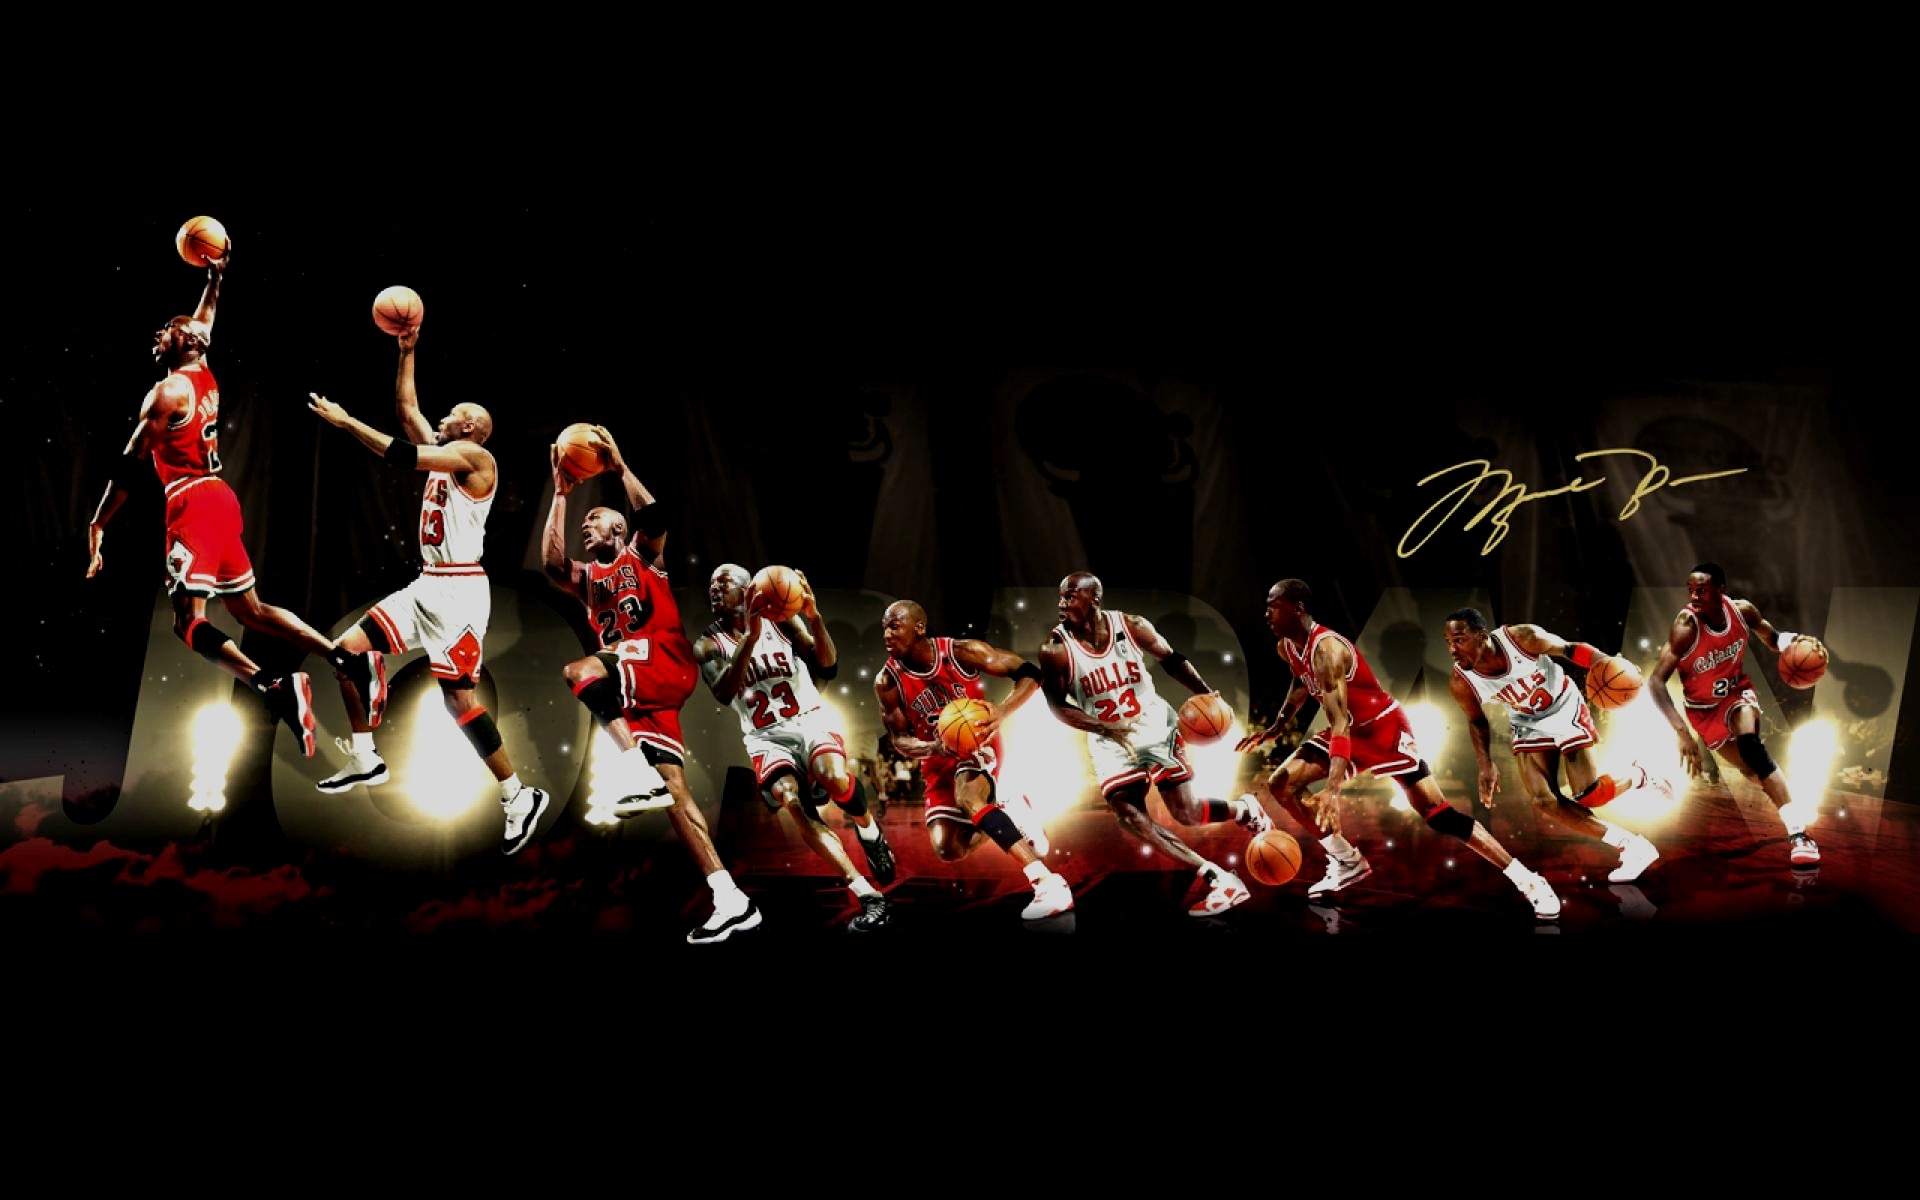 Derrick Rose Shoes 2015 Basketball Players Derrick Rose Shoes 1920x1200